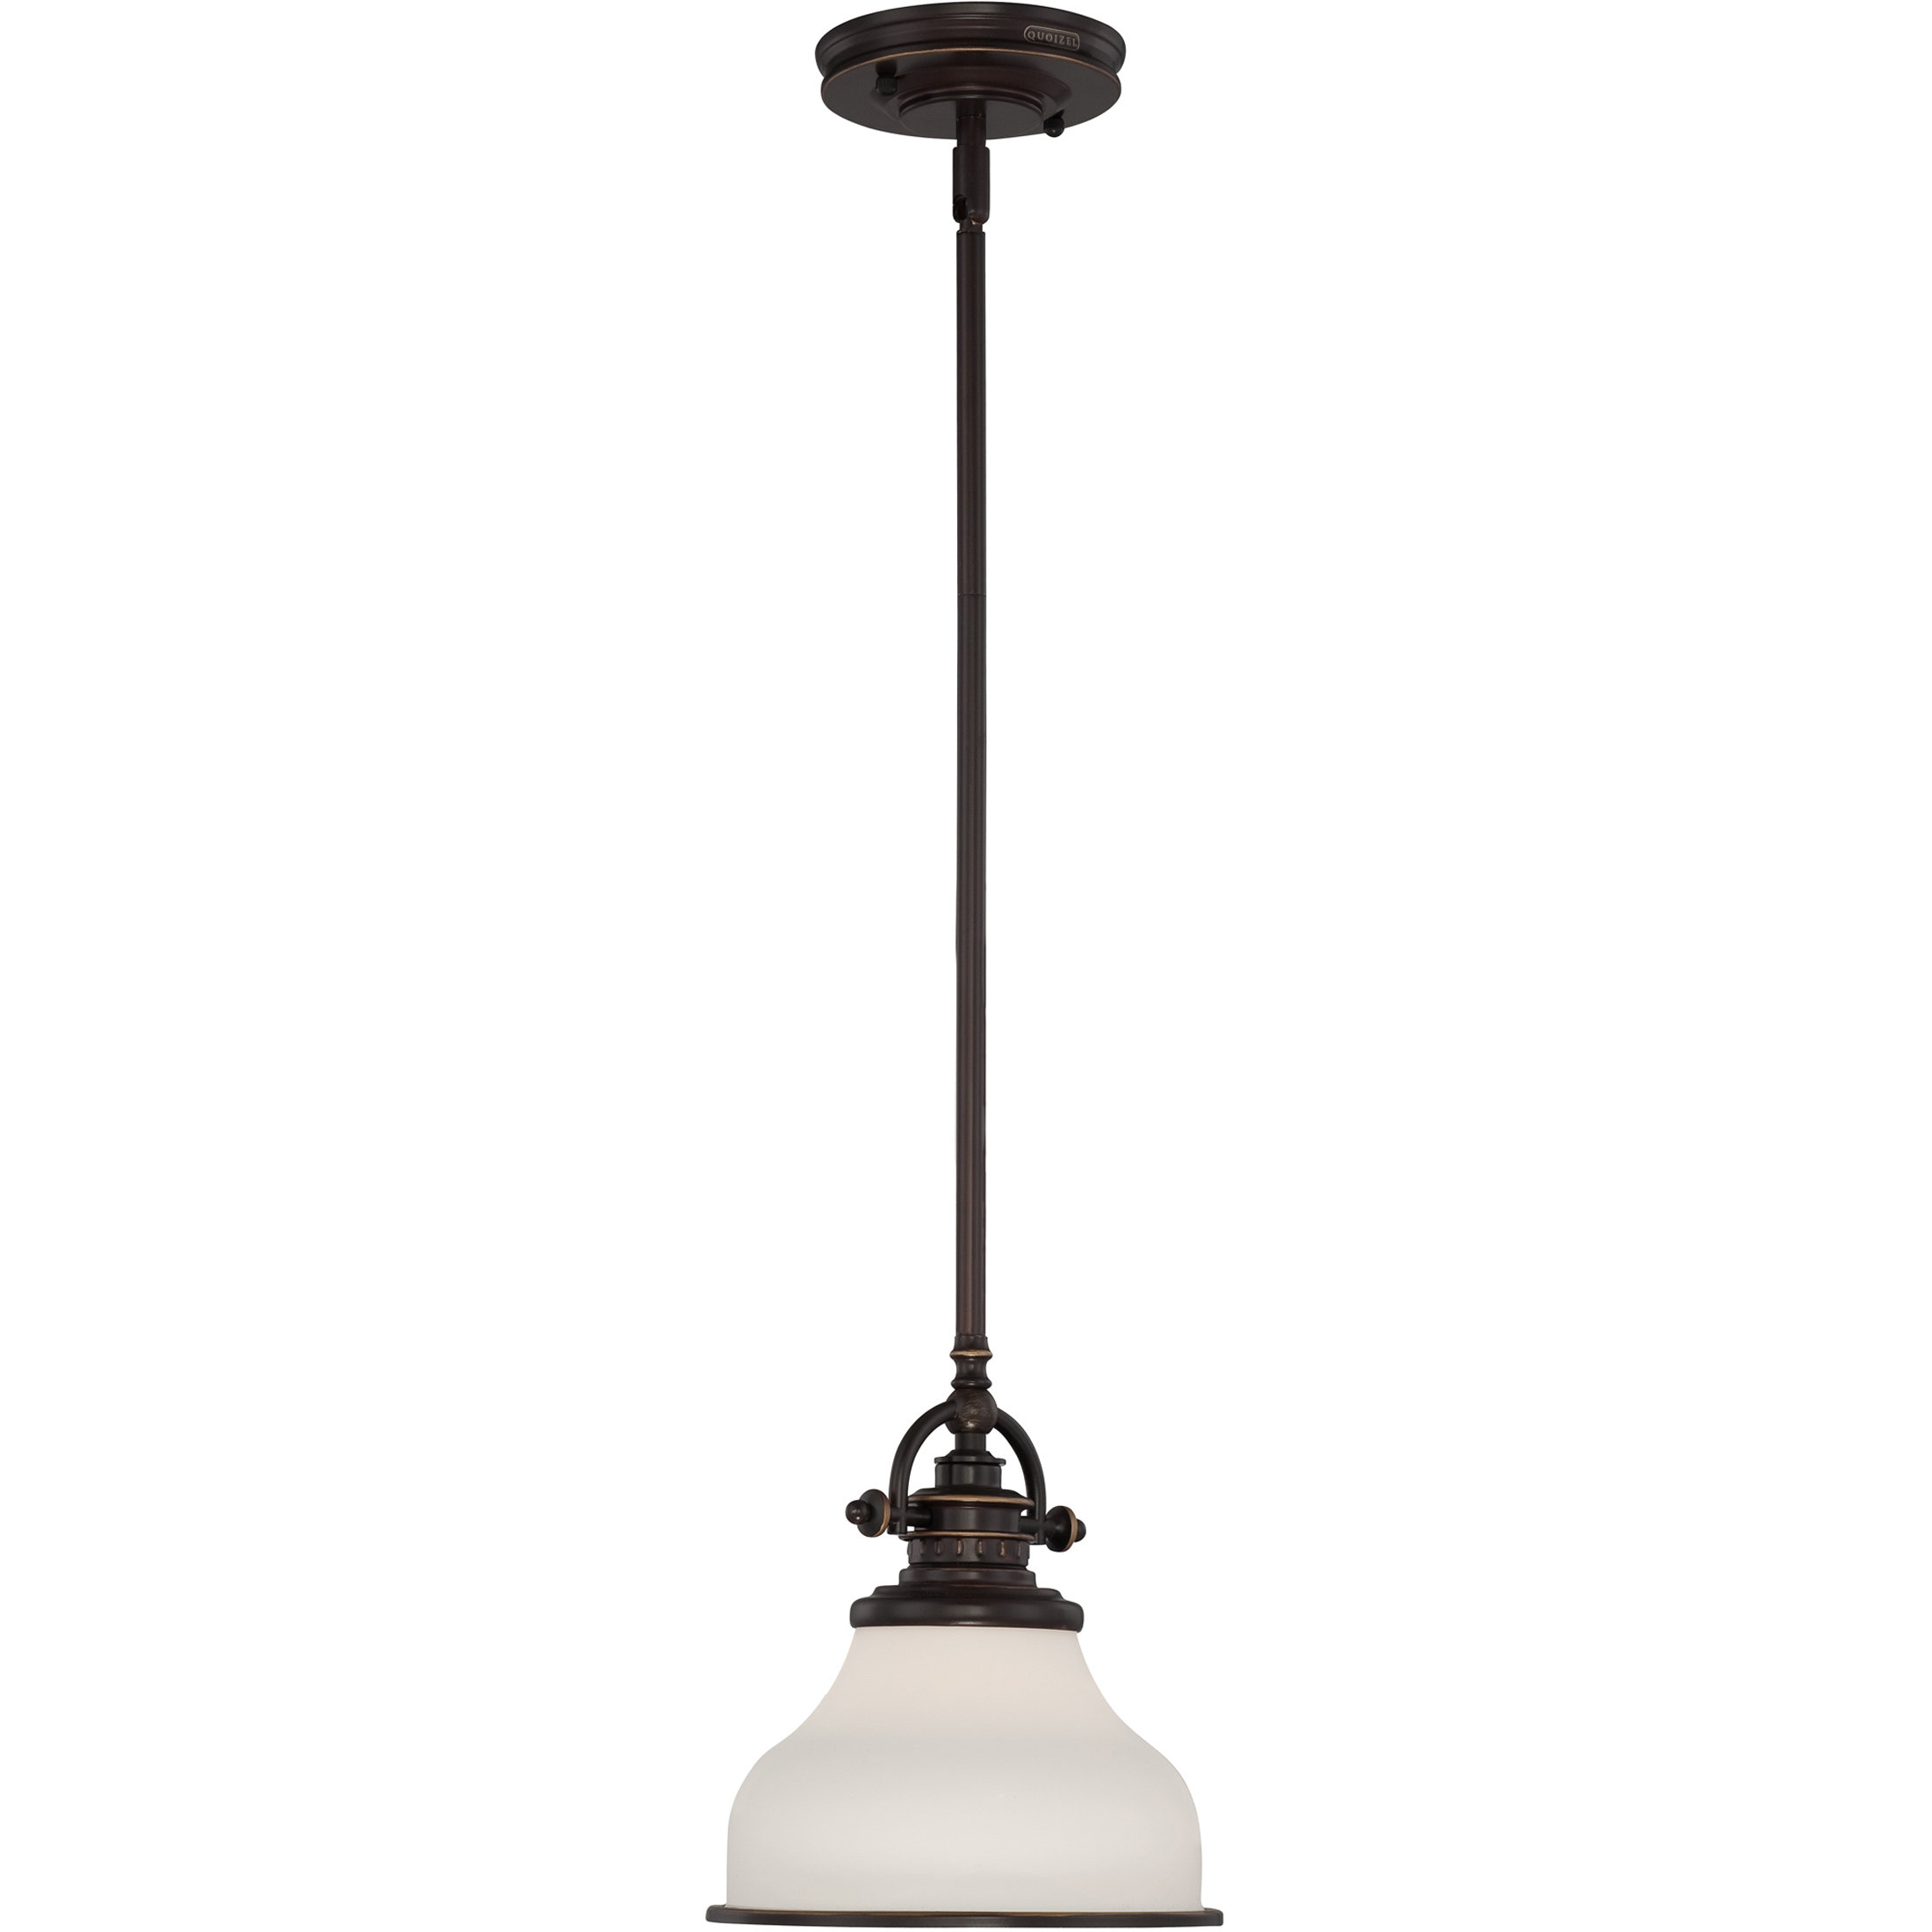 Macon 1 Light Single Bell Pendant With Bodalla 1 Light Single Bell Pendants (View 20 of 30)